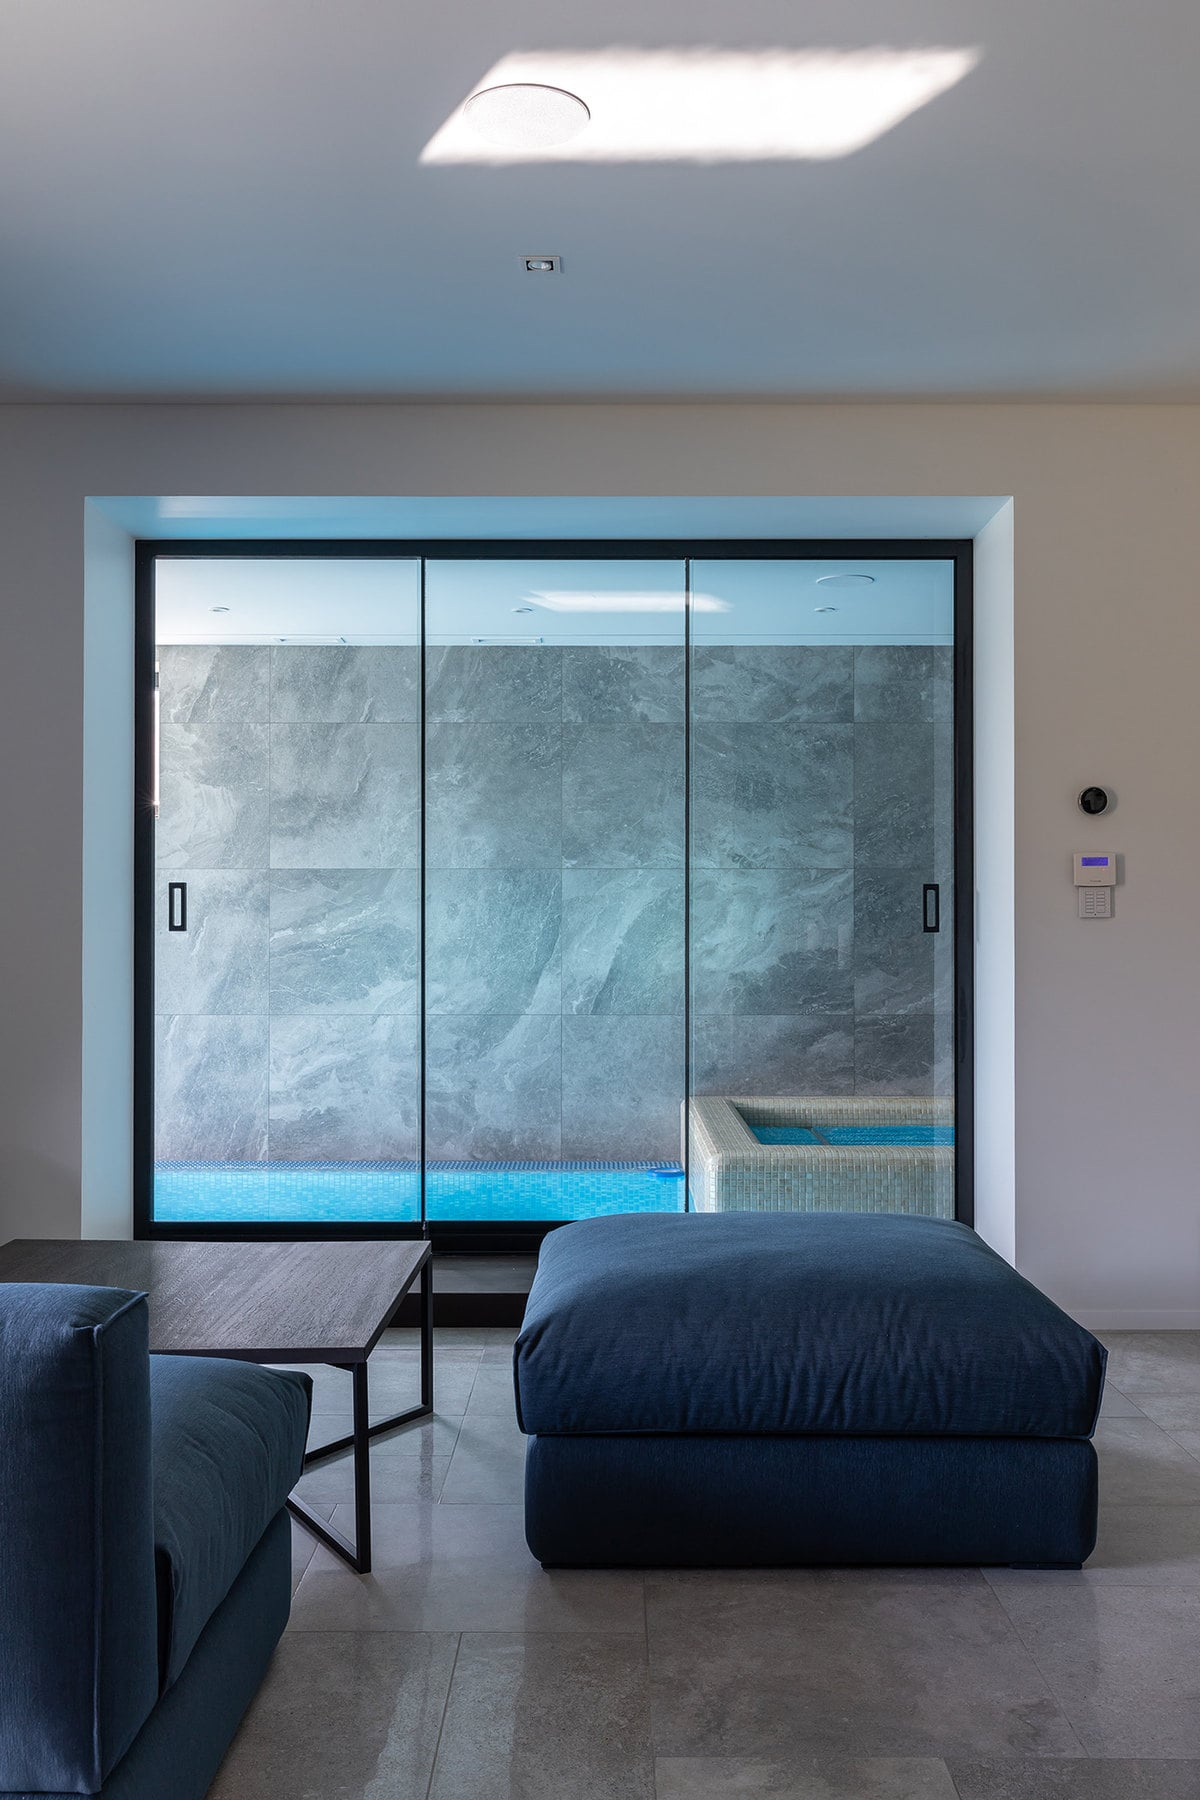 There is a lovely and comfortable living room area beside the indoor pool through the glass doors. It has a comfortable set of sofas in dark tones to contrast the white walls.